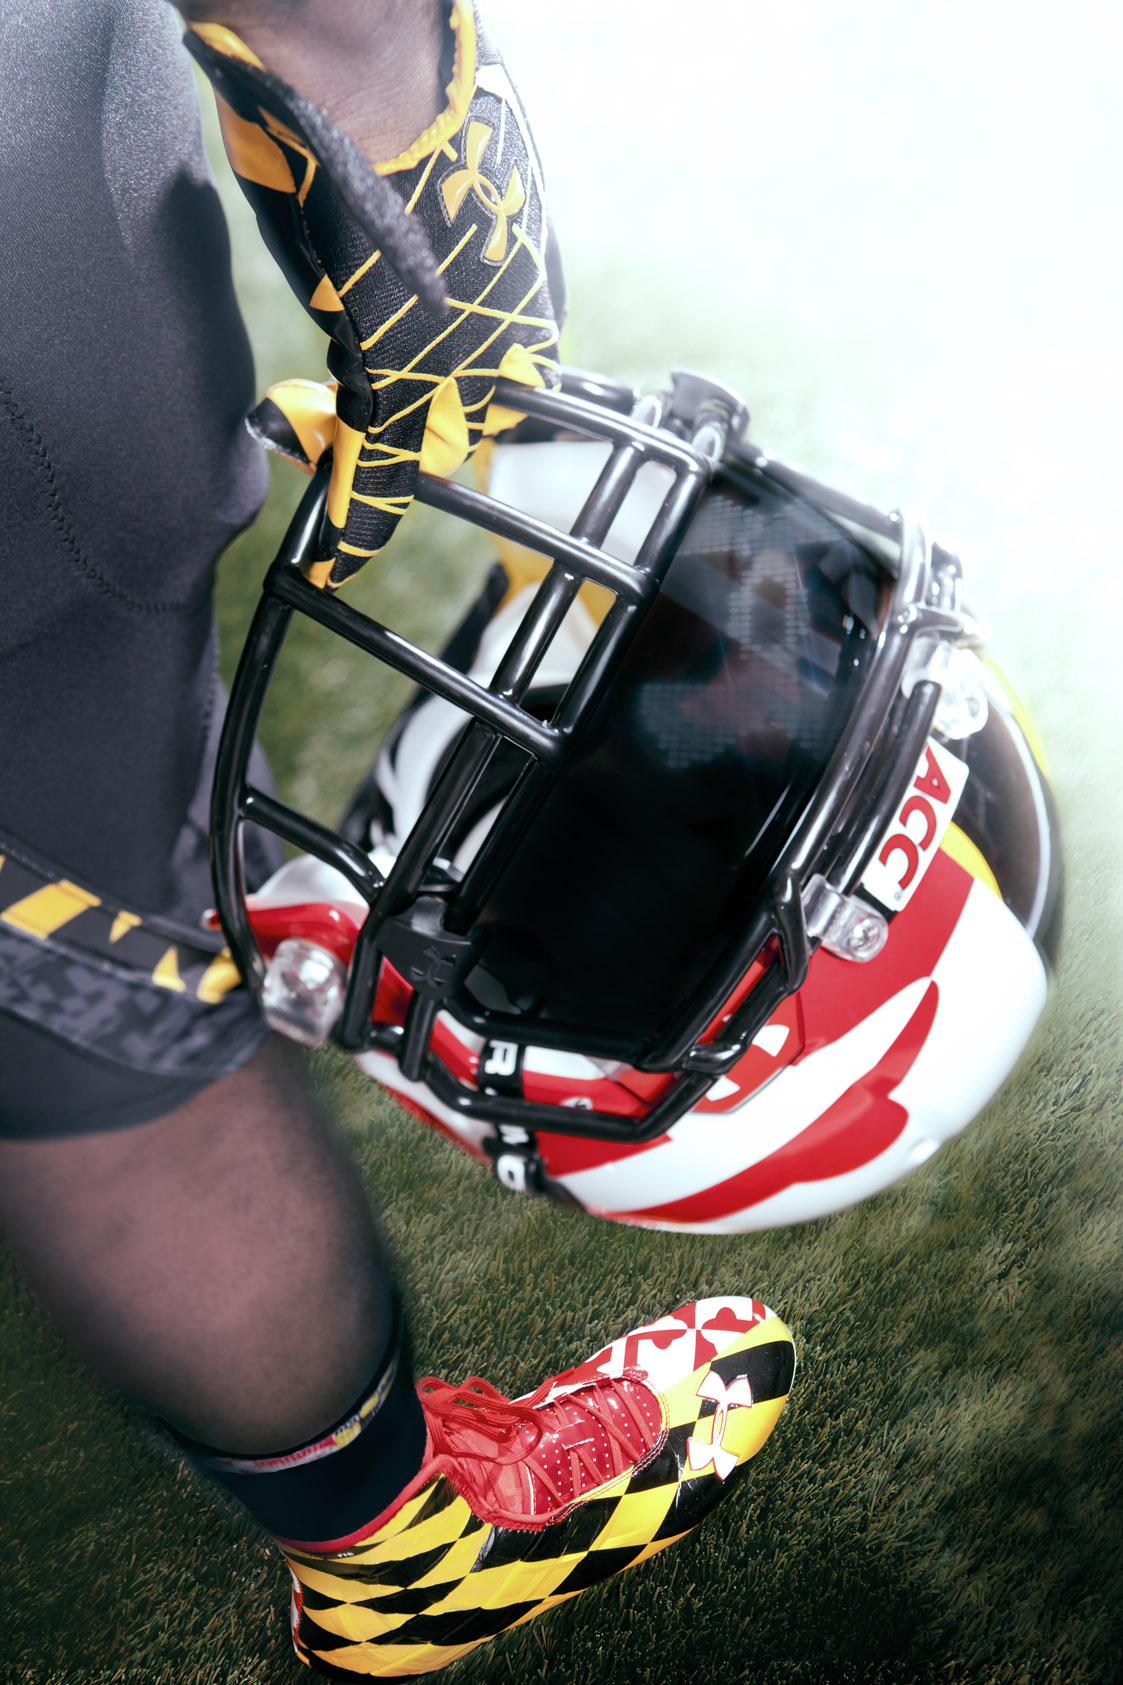 under-armour-maryland-ride-football-uniforms-1.jpg